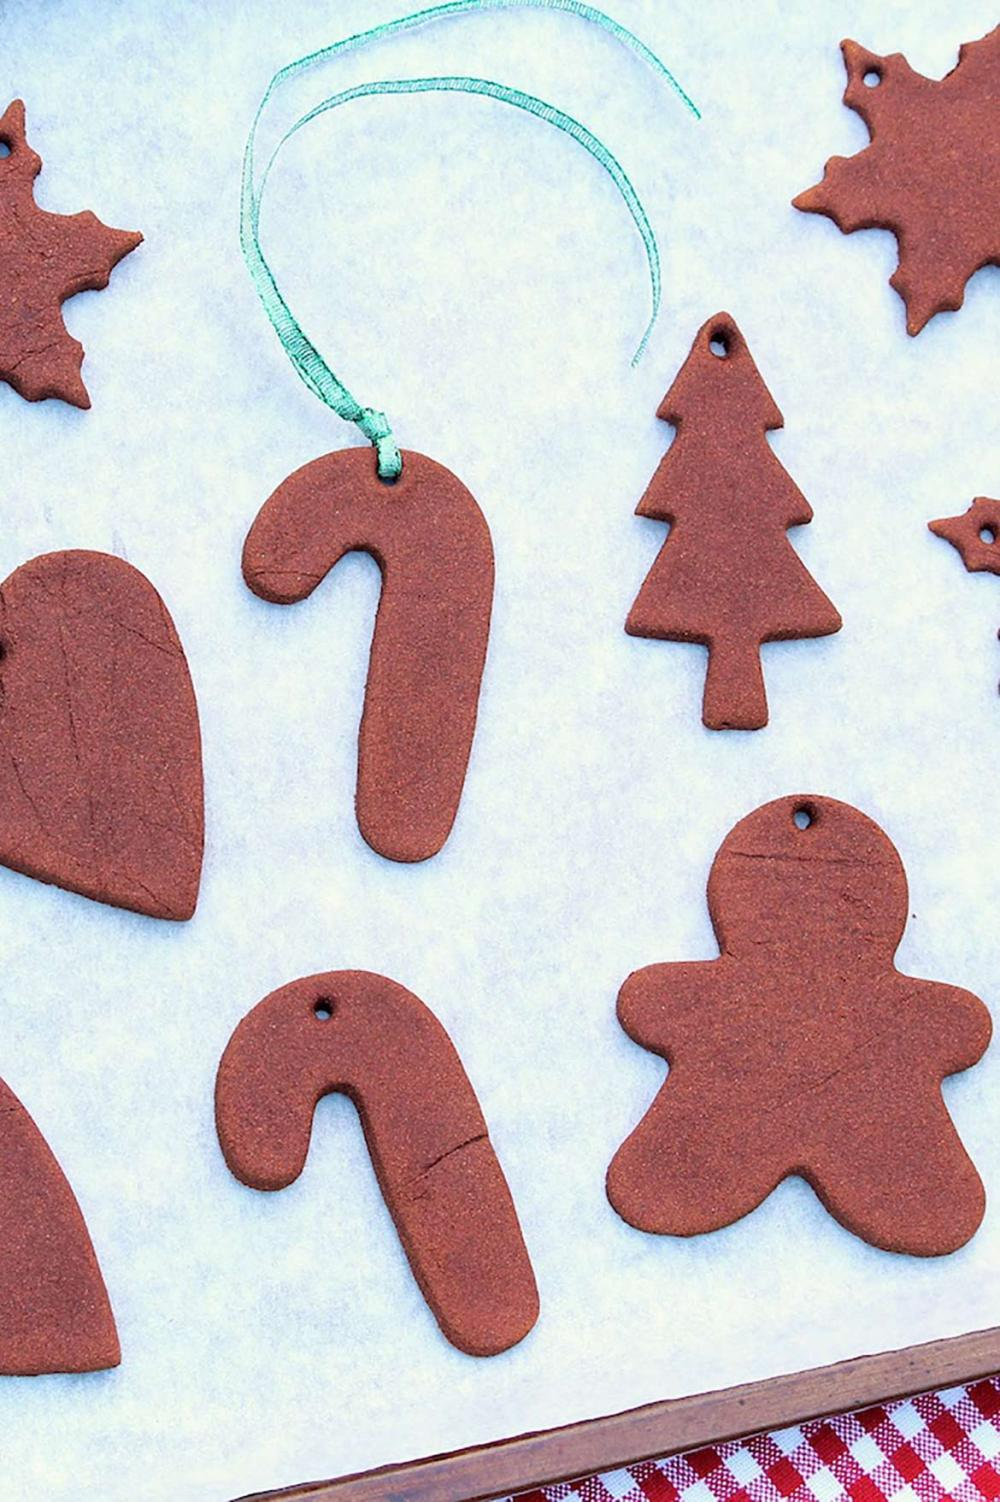 Three simple ingredients come together for a project that's fun for adults and kids alike. Once dried, you can decorate as desired or opt for a rustic look. Great as a gift and the aroma will last for years!